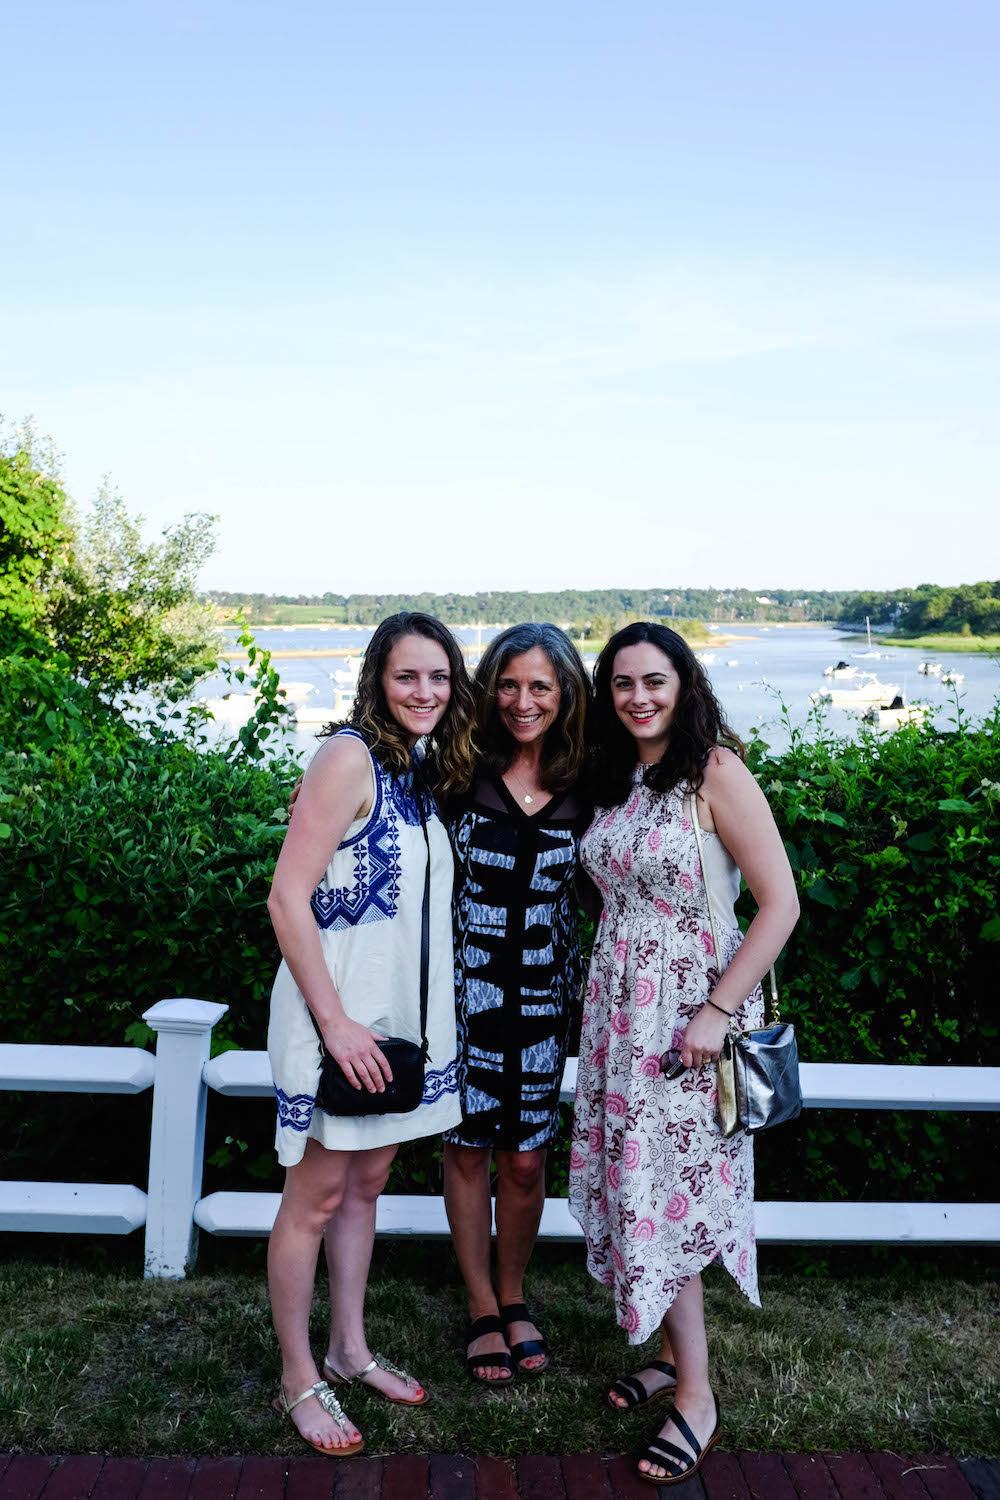 The Wequassett Resort and Golf Club - Meredith Atwood, Denise Atwood, Rebecca Atwood